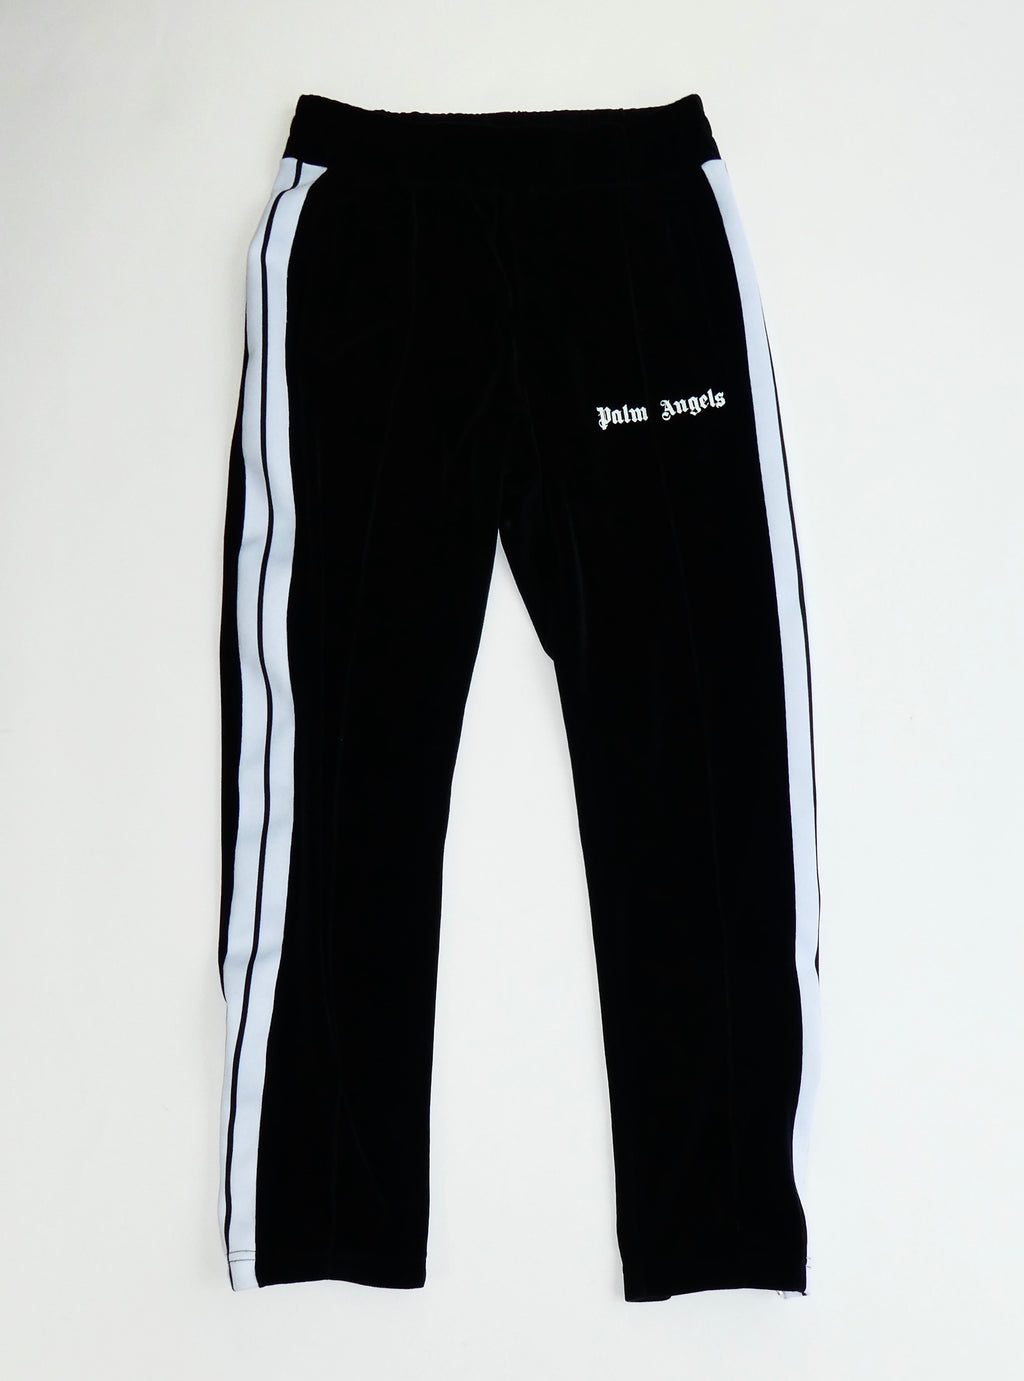 Palm Angels Velour Track Pants - Medium